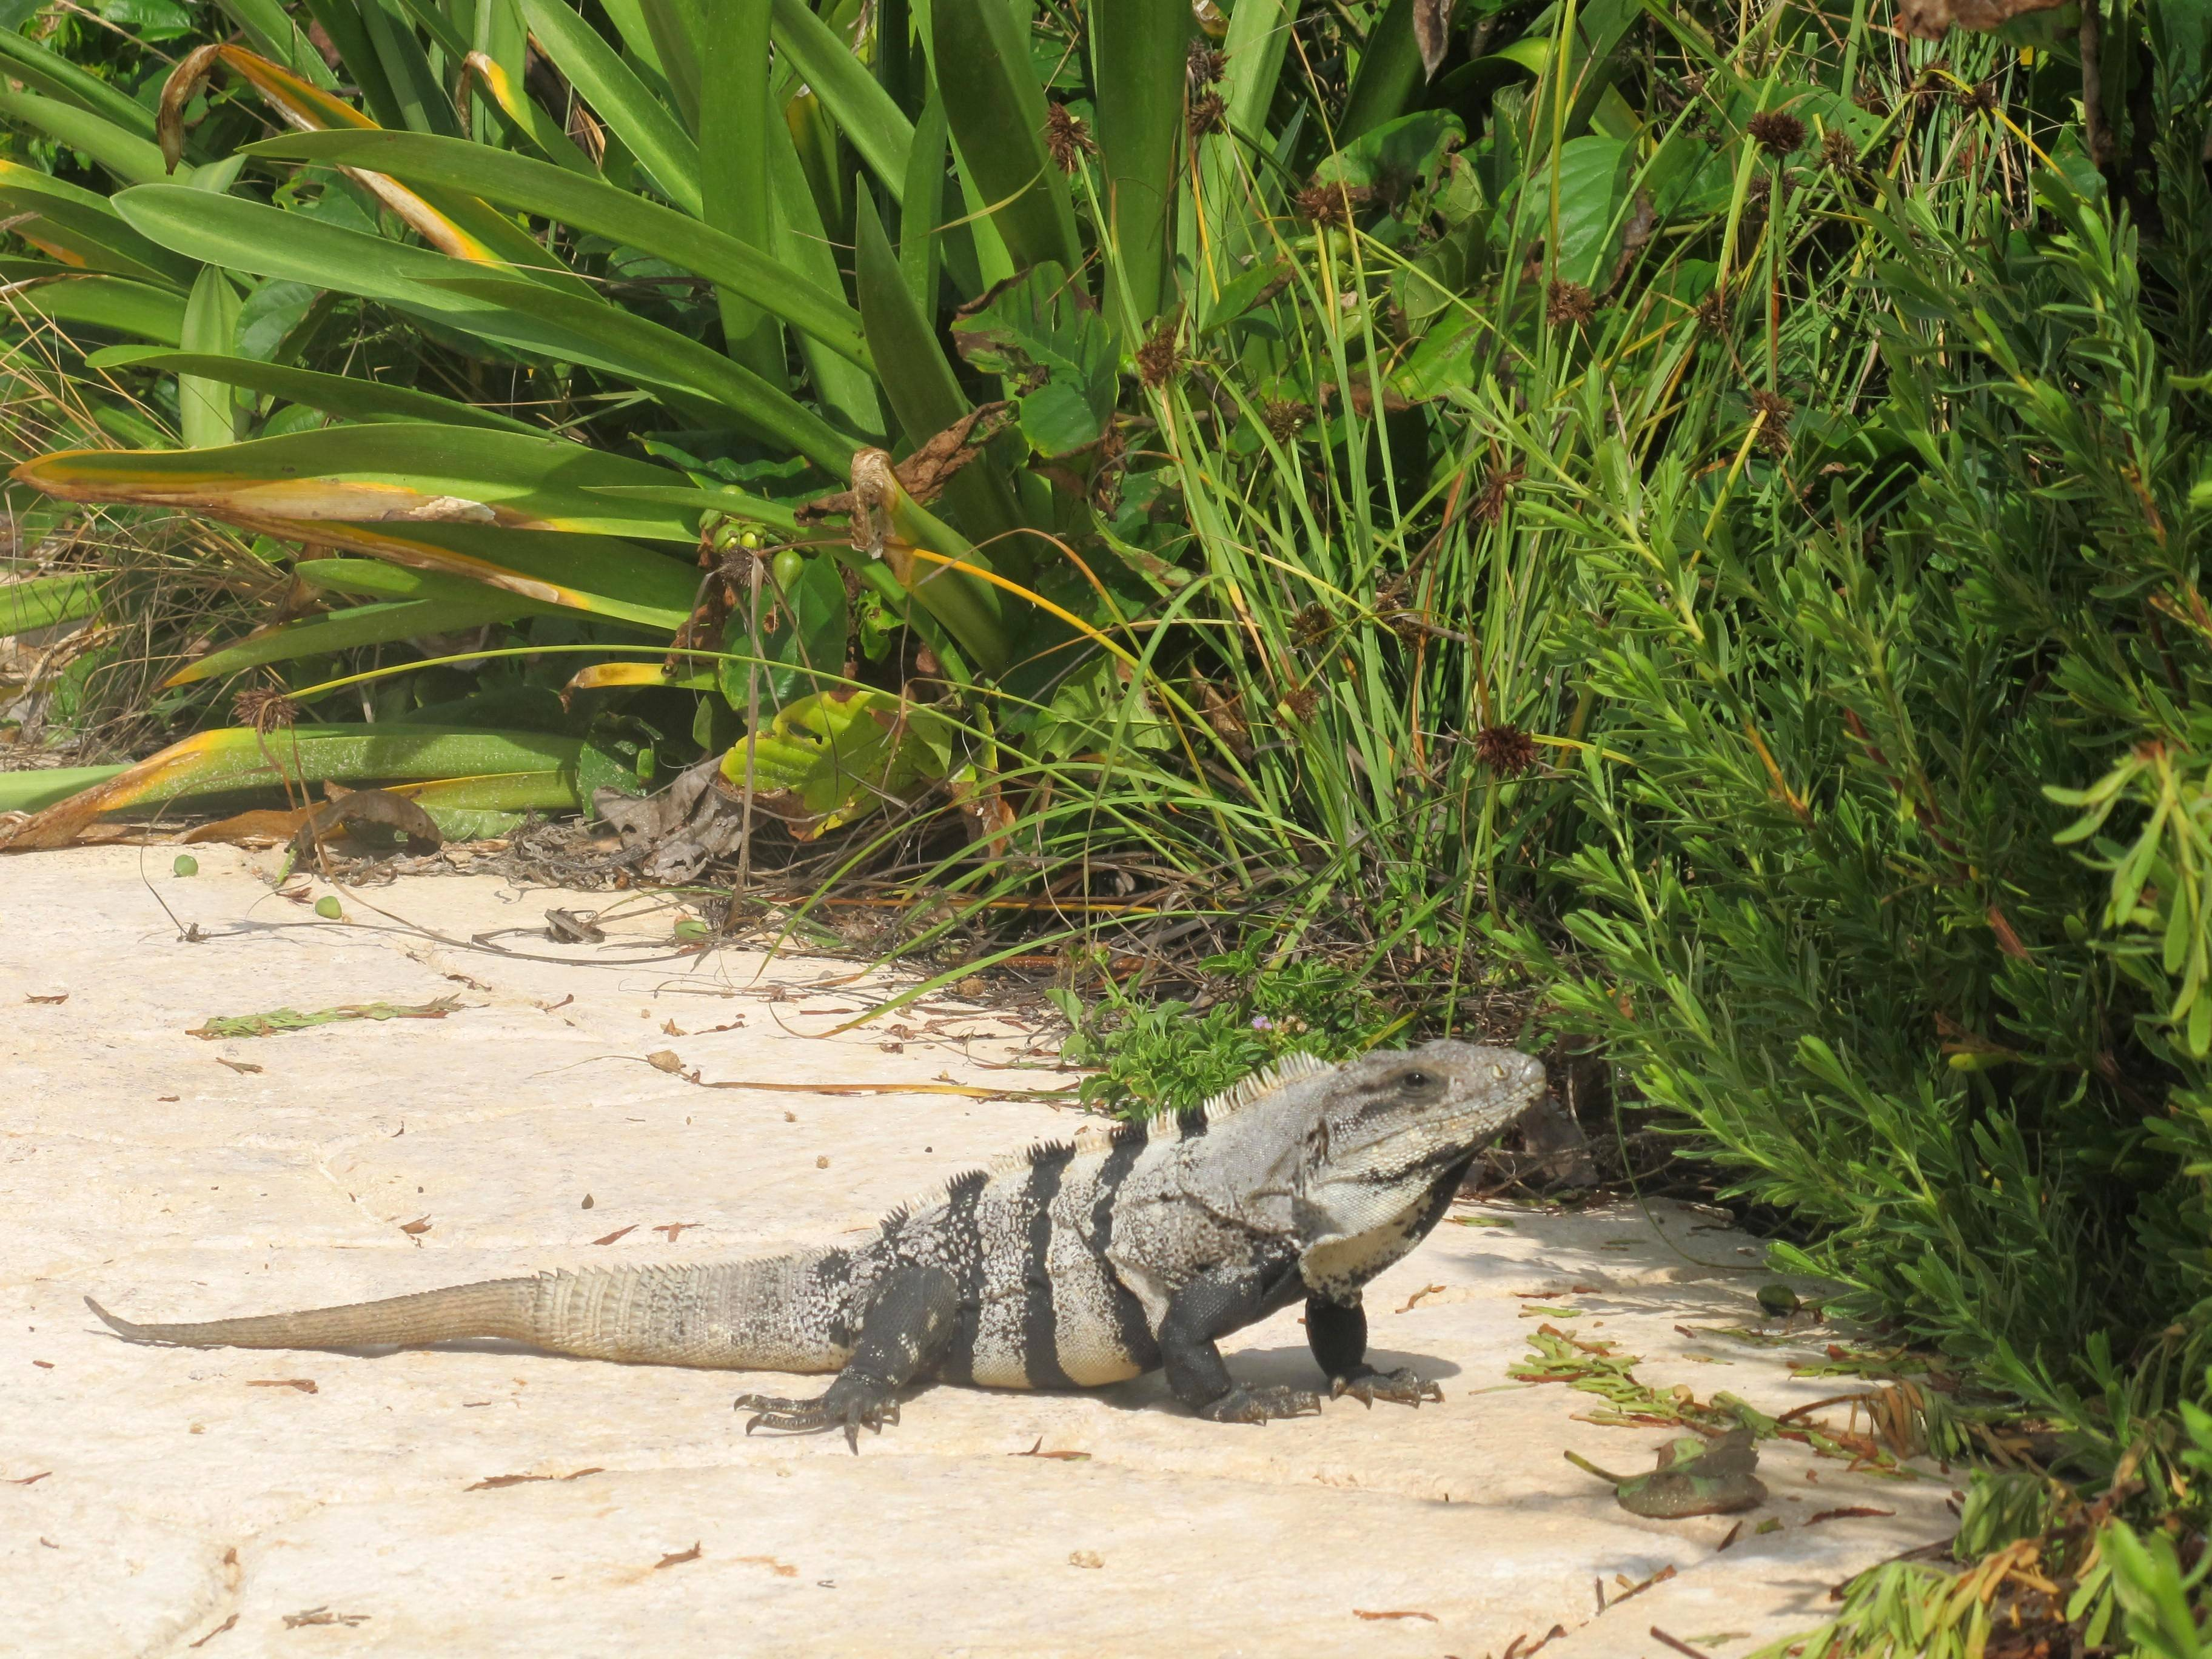 An iguana basks in the sun on the Mexican island of Isla Mujeres. The lizards are a common sight on the island, especially at the southernmost tip, known as Punta Sur.